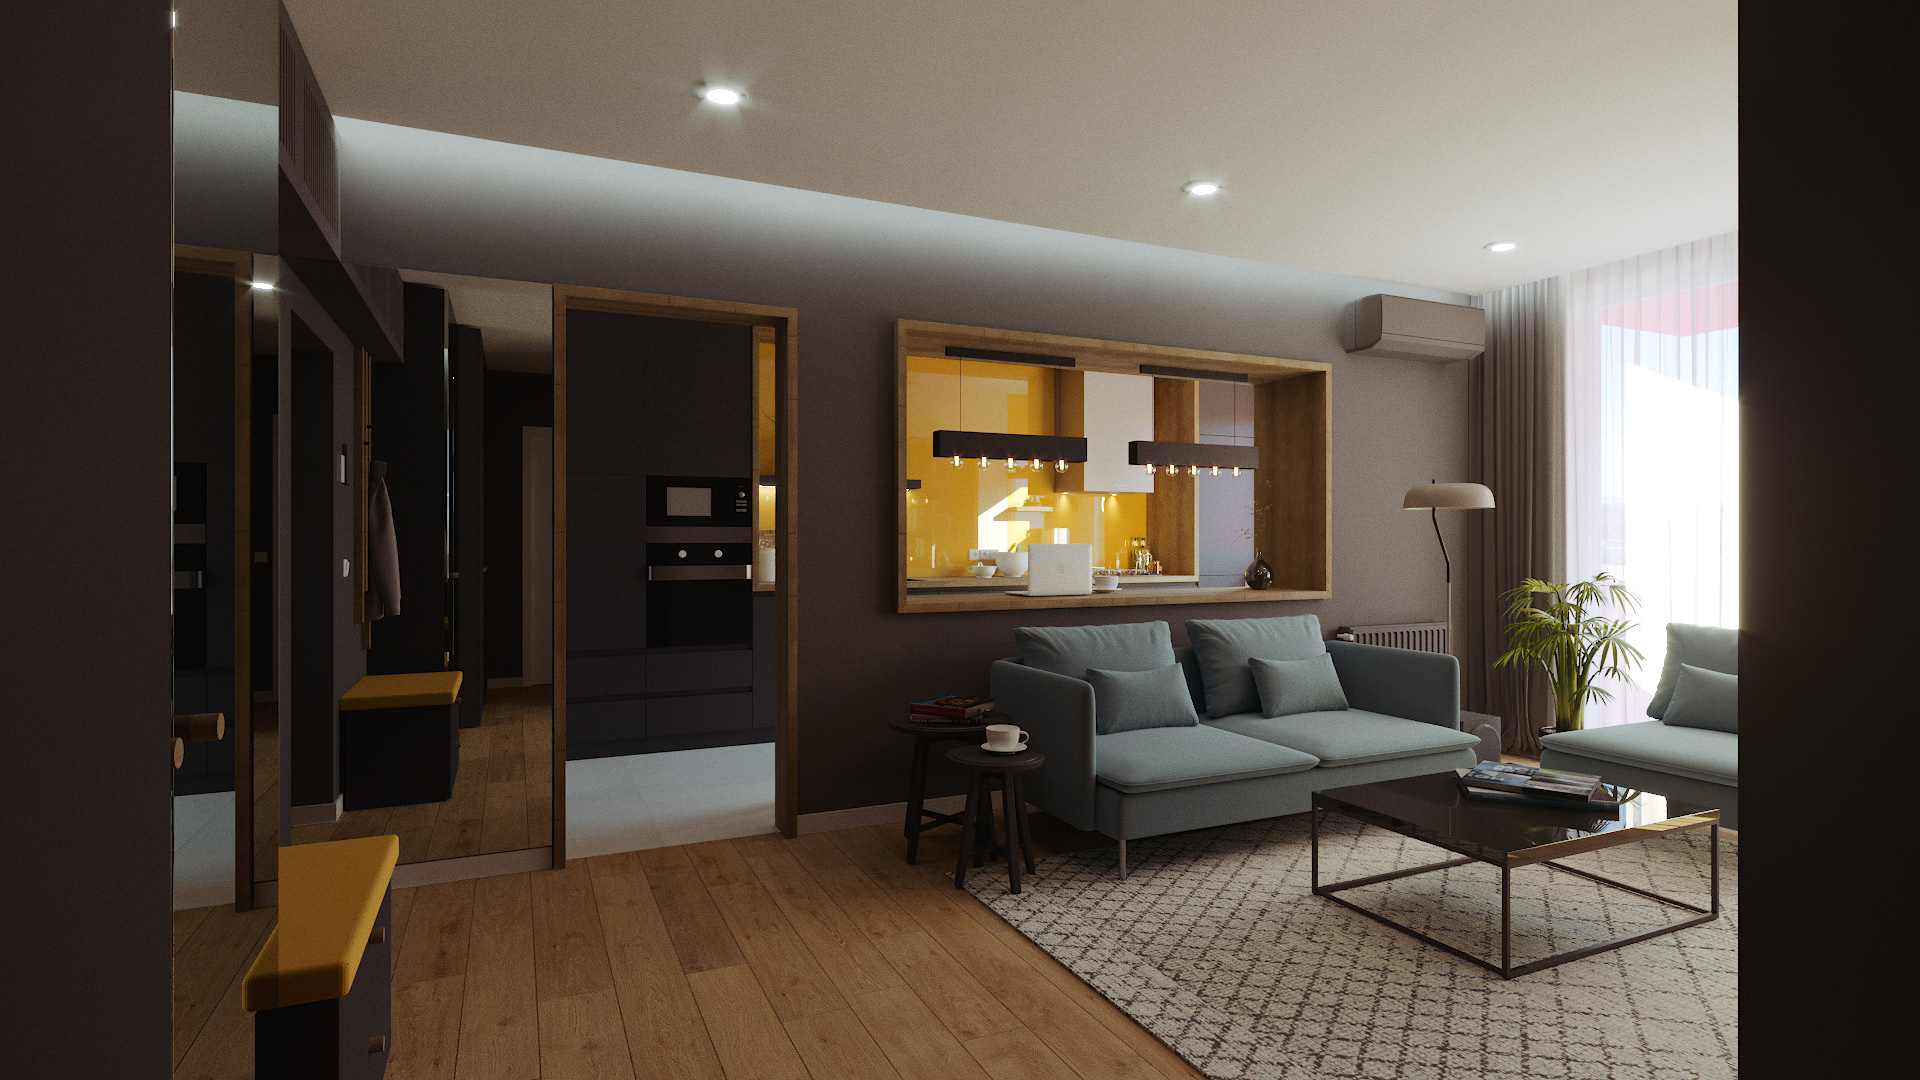 Dark tones in this elegant 2 room apartment bathed in natural light while also keeping it cosy and welcoming through the use of wood finishes